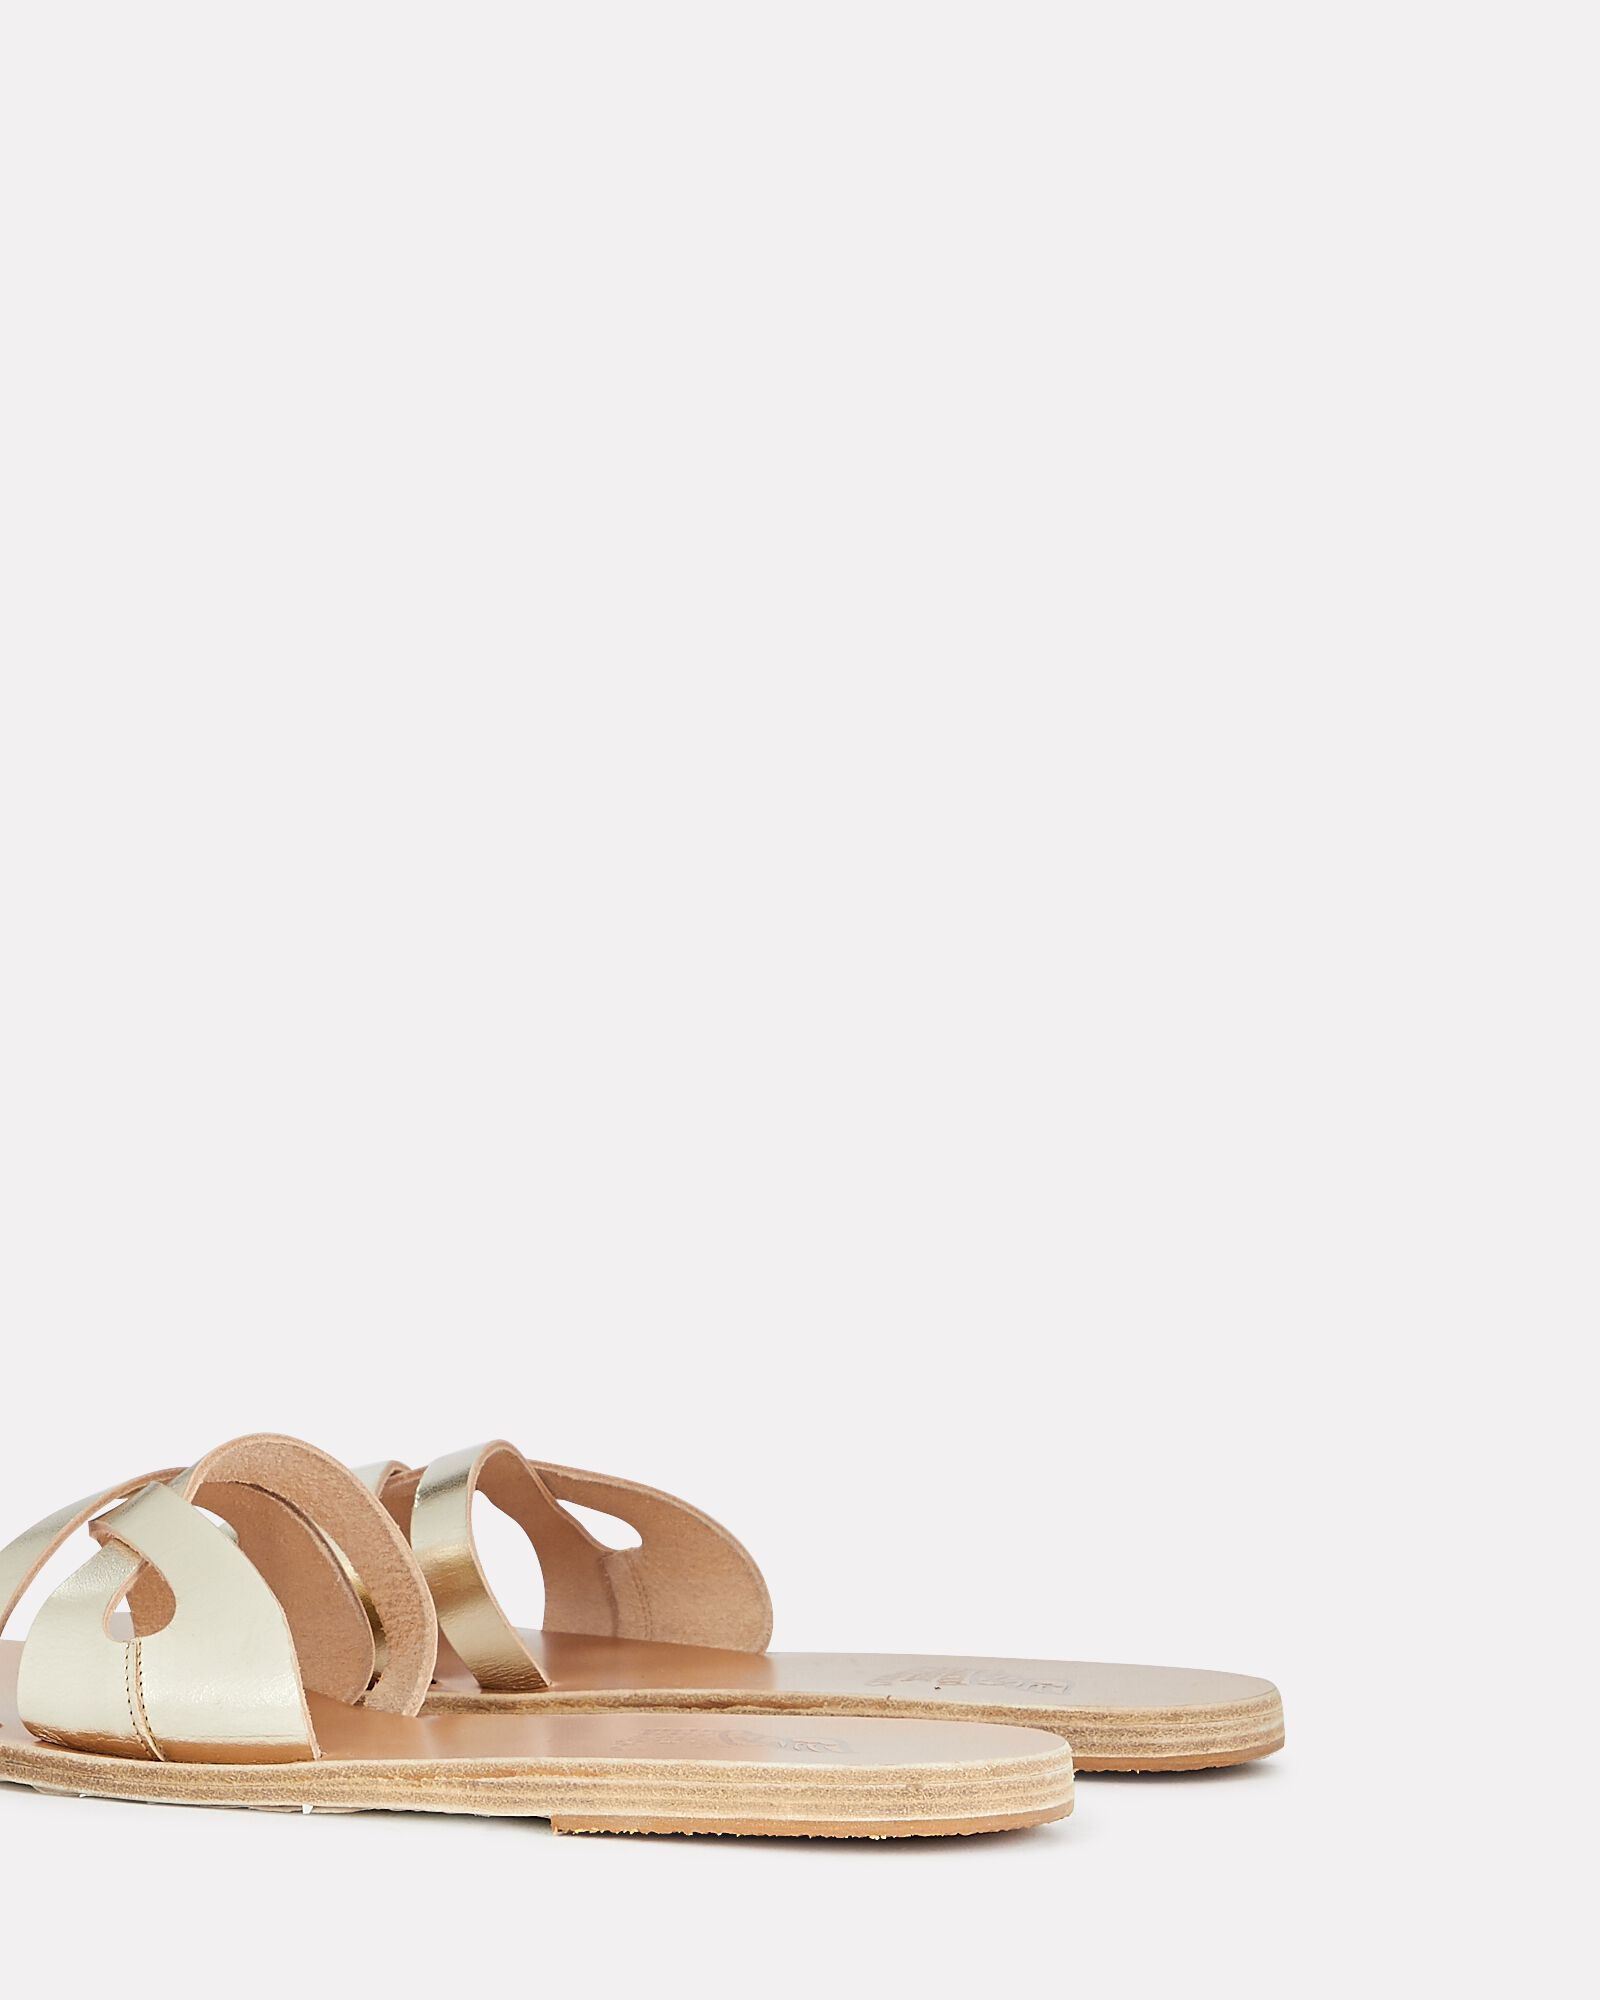 Apiron Metallic Leather Sandals, GOLD, hi-res